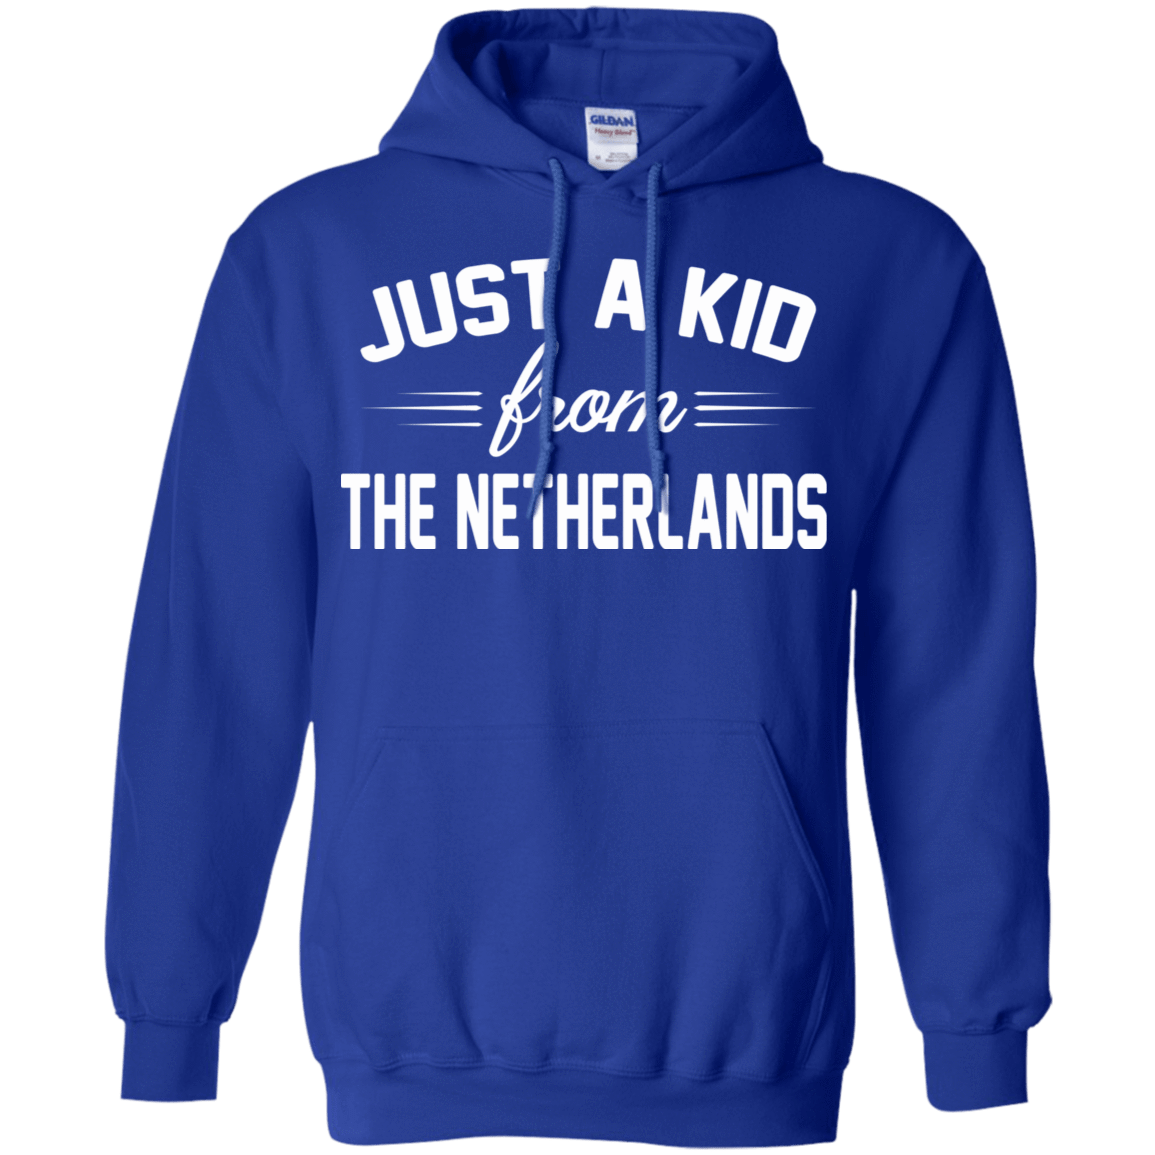 Just a Kid Store | Netherlands T-Shirts, Hoodie, Tank 541-4765-72090841-23175 - Tee Ript